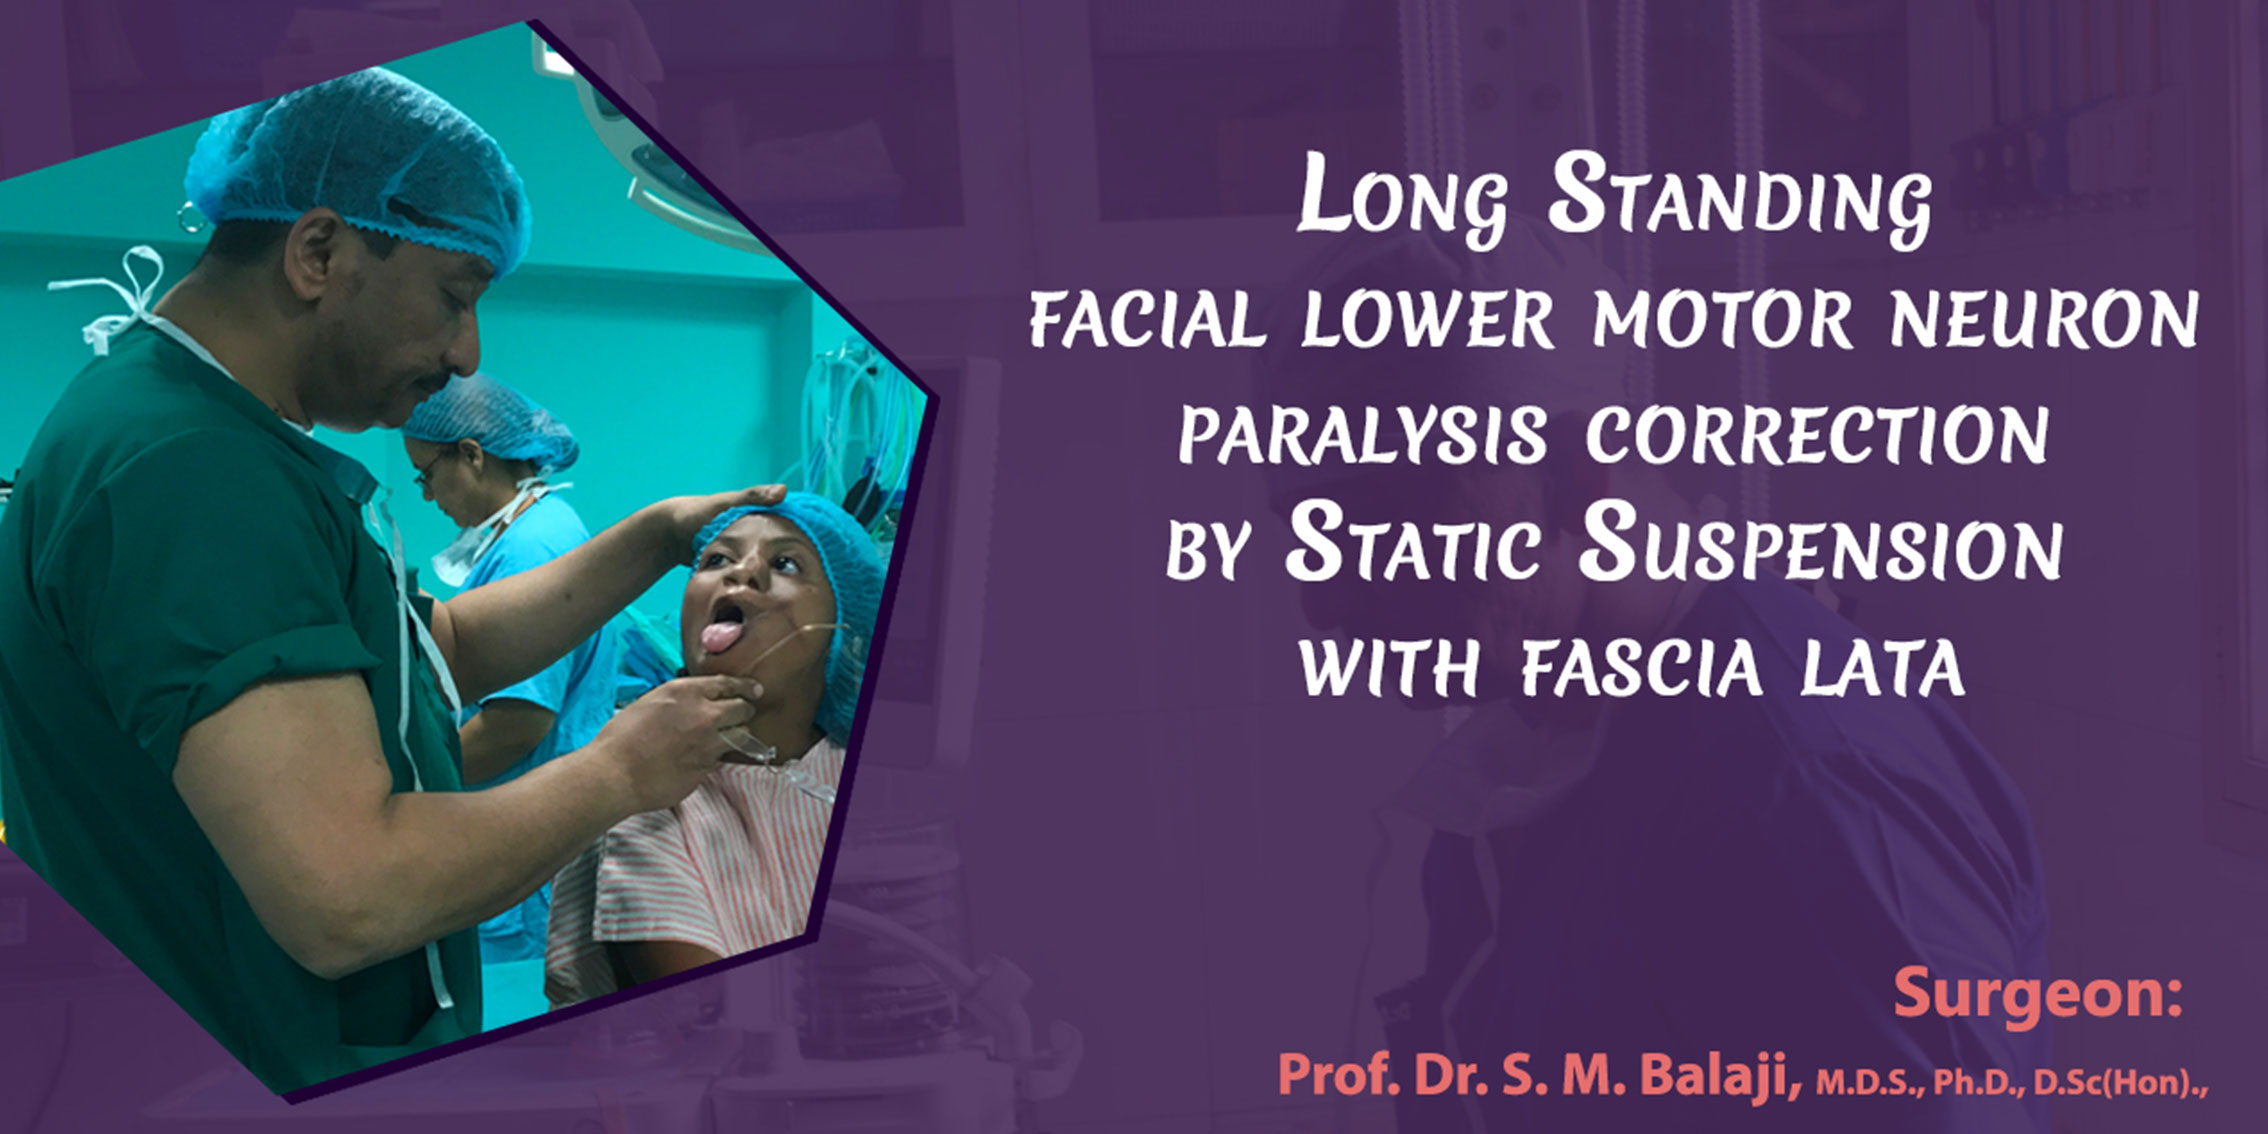 Long standing lower motor neuron facial paralysis correction by static suspension with fascia lata